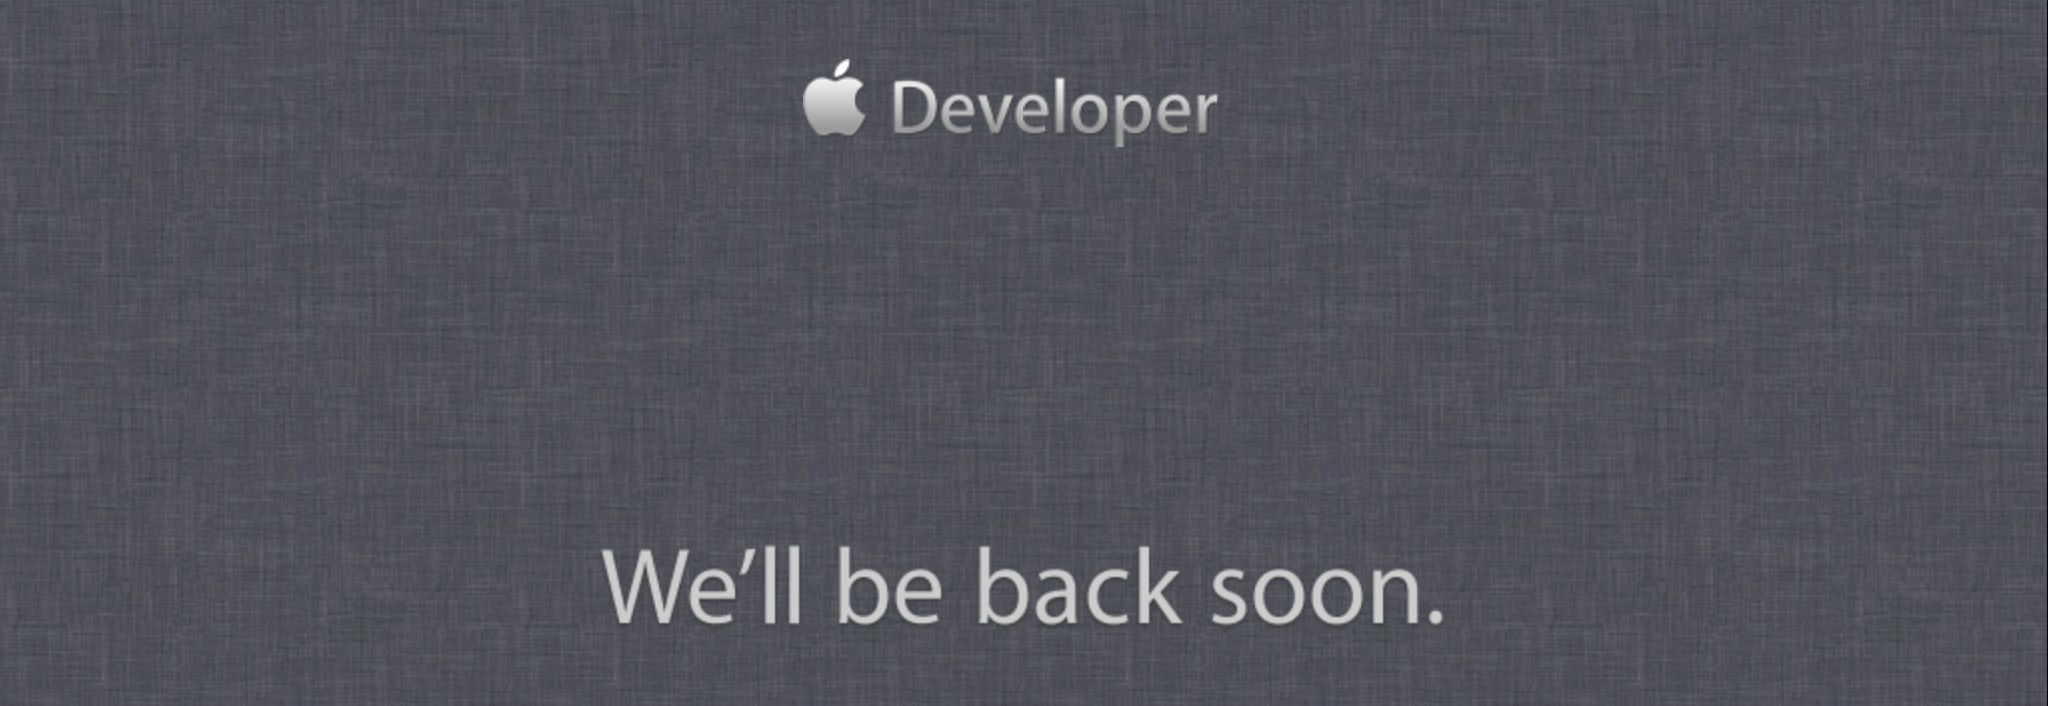 All Of Apple's Developer Services Are Back Online: Free Extension Offered